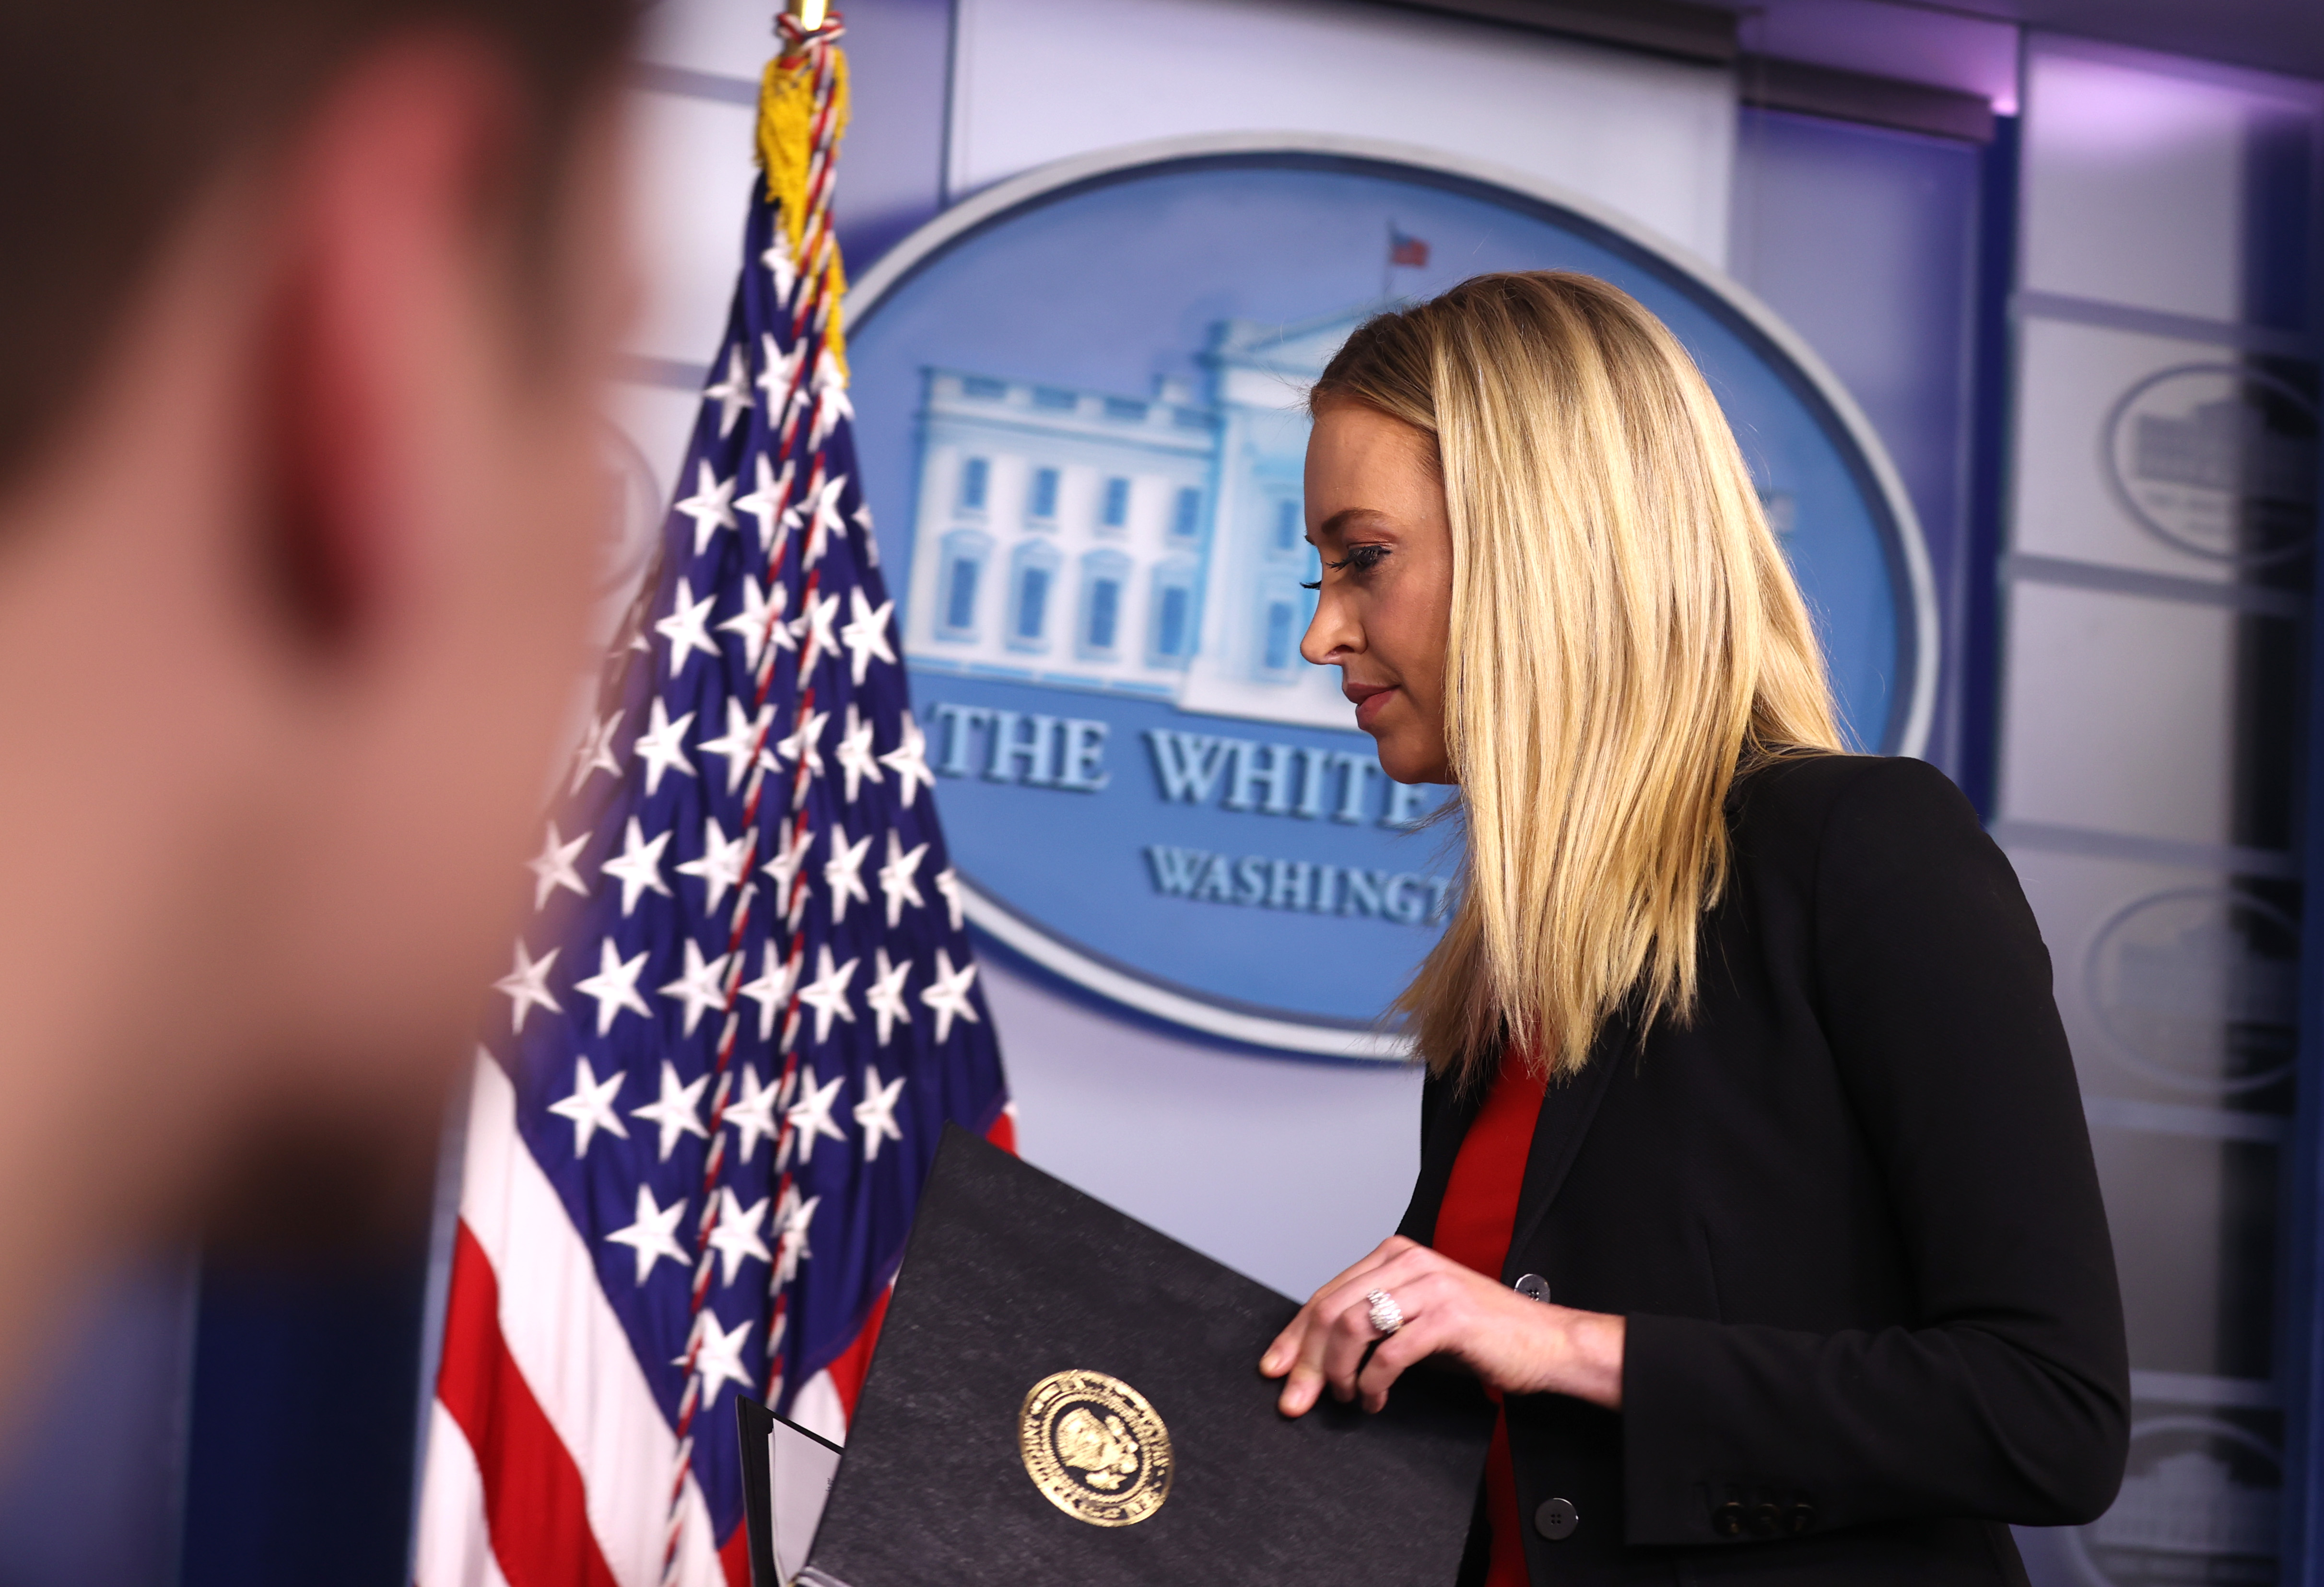 WASHINGTON, DC - JANUARY 07: White House Press Secretary Kayleigh McEnany leaves the podium after making a statement in the James Brady Press Briefing Room on January 07, 2021 in Washington, DC. McEnany delivered remarks a day after armed protesters breached the U.S. Capitol to disrupt the vote to ratify President-elect Joe Biden's 306-232 Electoral College win over President Donald Trump. (Photo by Tasos Katopodis/Getty Images)